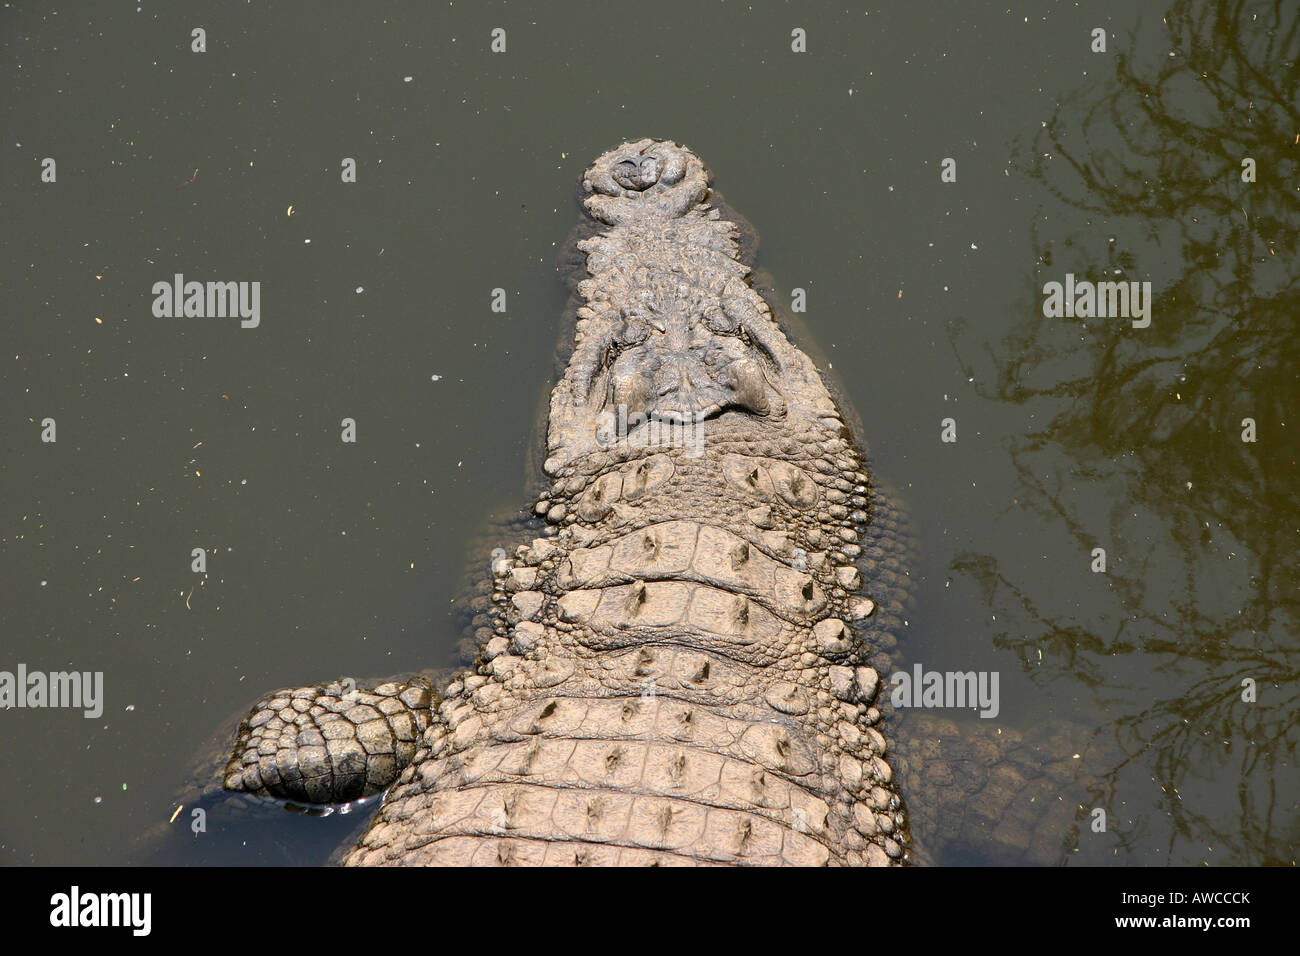 Crocodile in the water - Stock Image